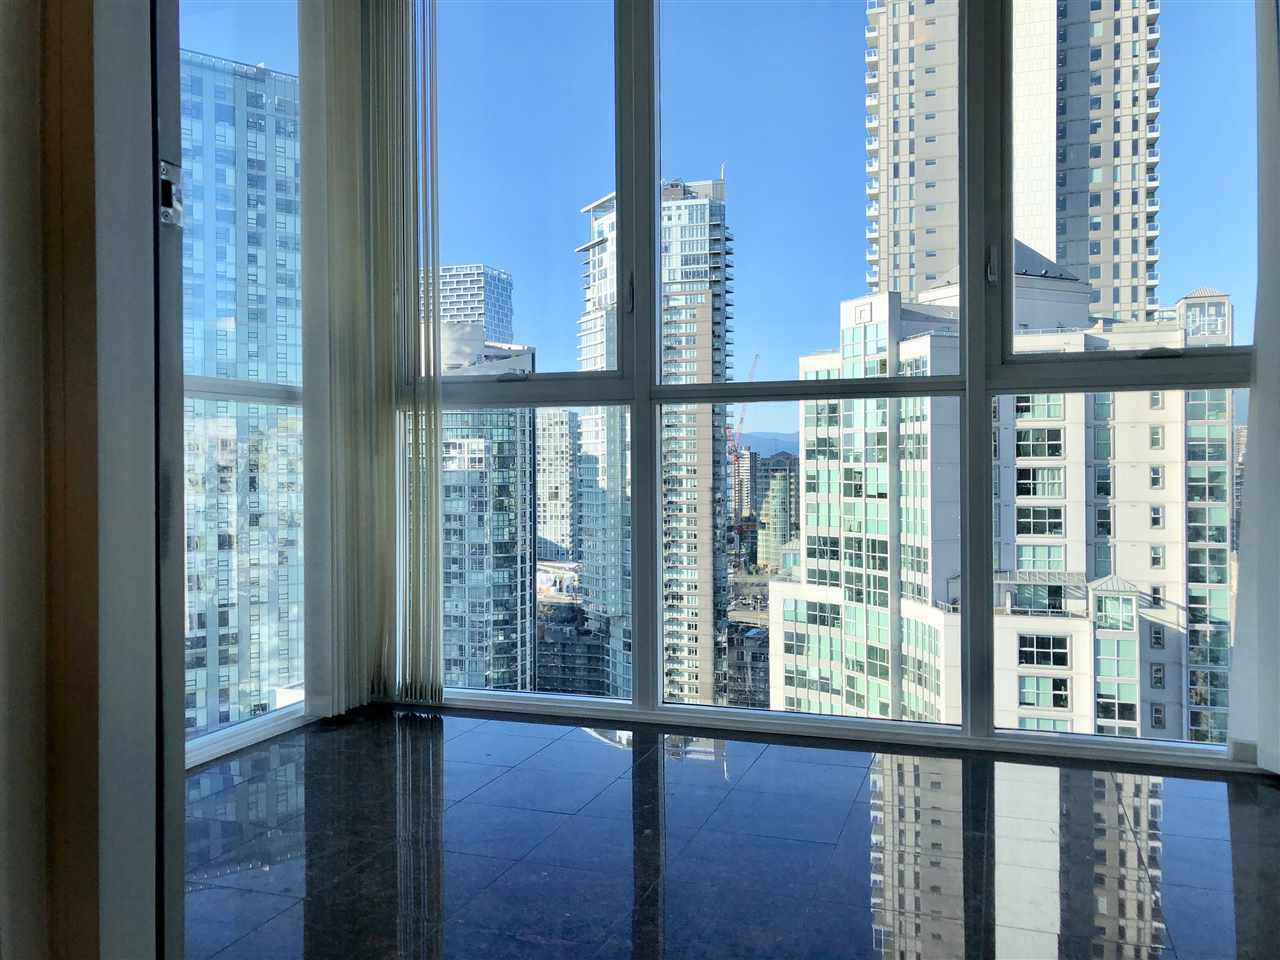 3001 388 DRAKE STREET - Yaletown Apartment/Condo for sale, 3 Bedrooms (R2422644) - #9